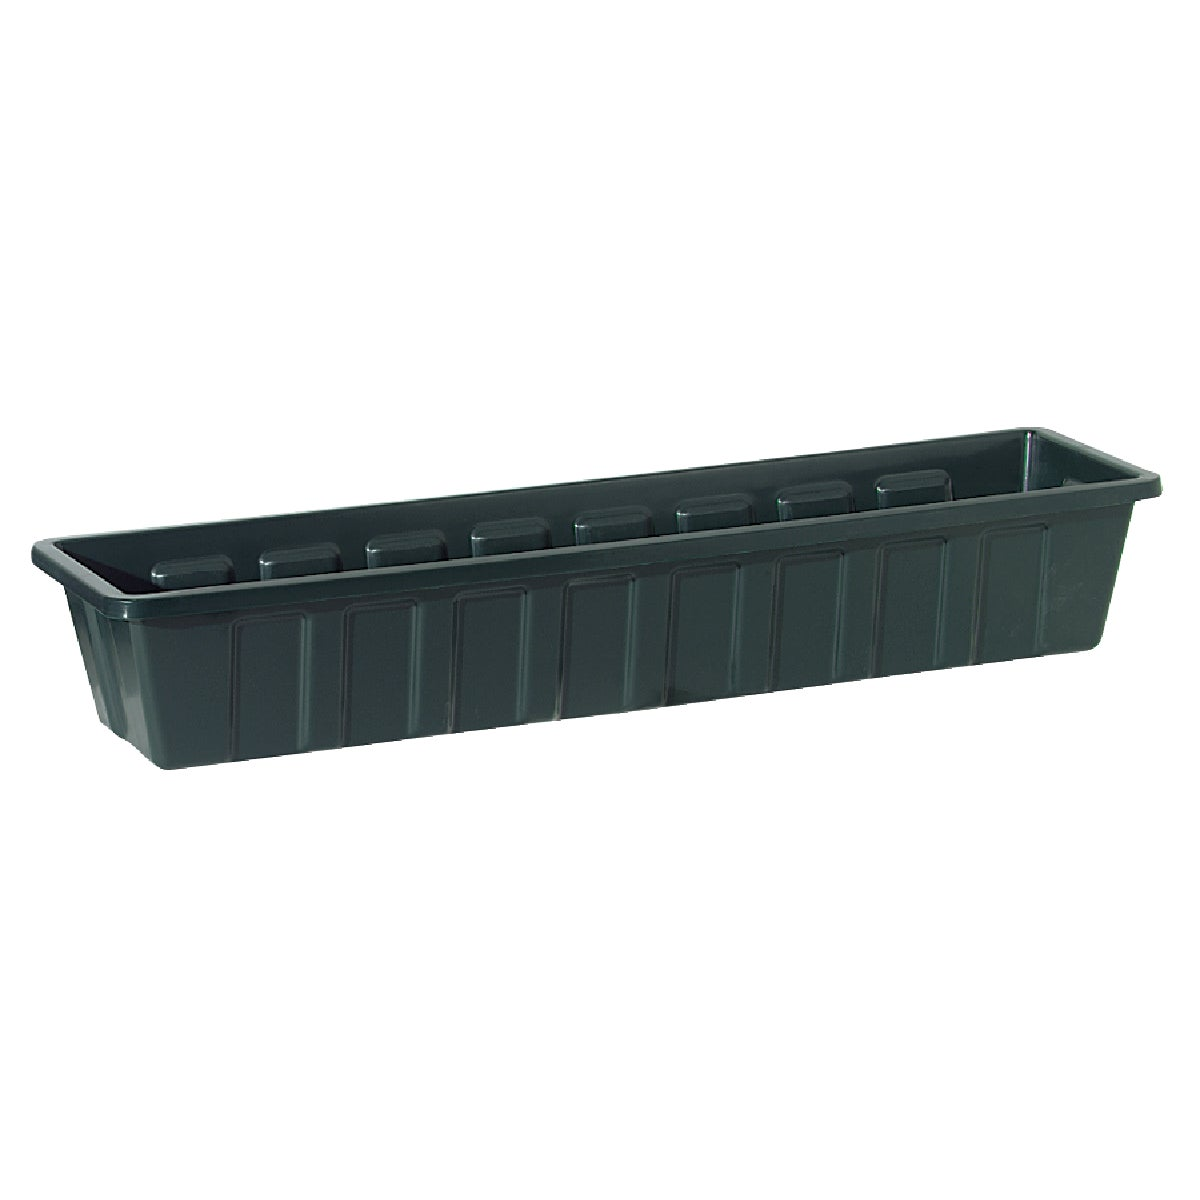 "18"" FLOWER BOX PLANTER - 02181 by Novelty Mfg Co"